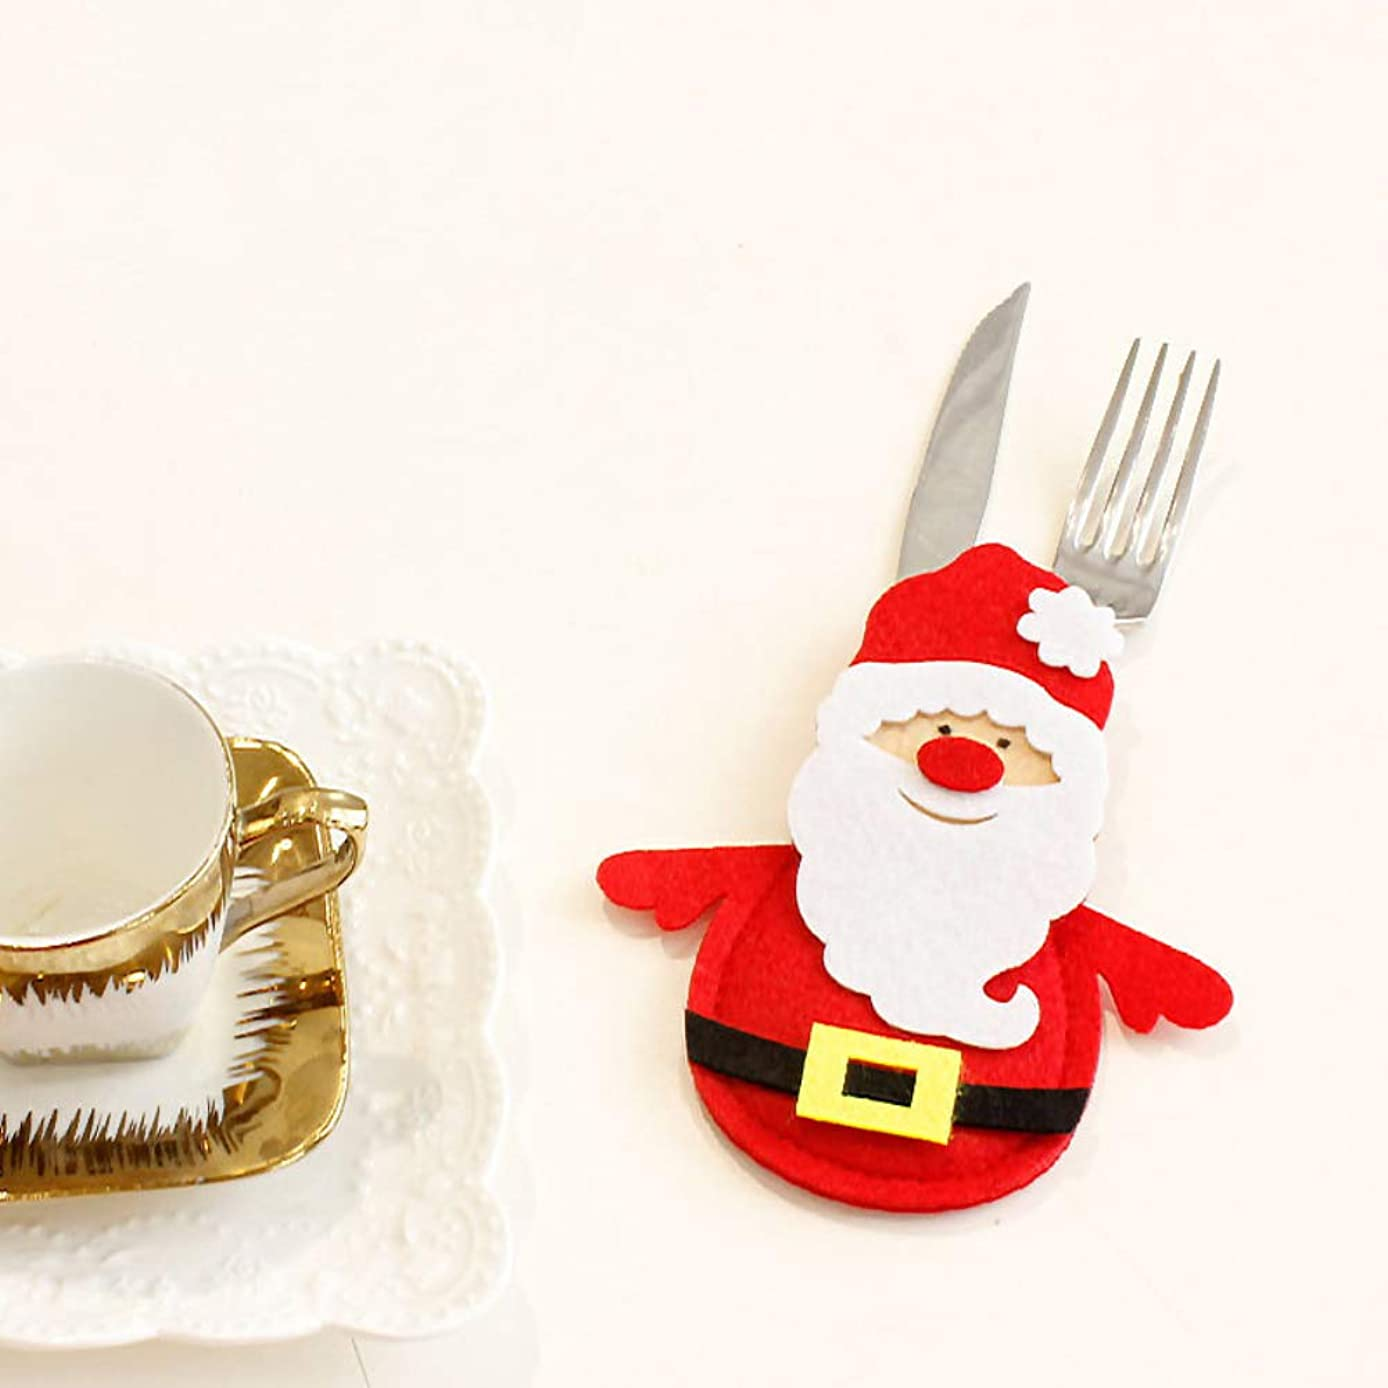 Youlaify Christmas Snowman Tableware Holder Stockings Pockets Knife and Fork Bags Party Decoration